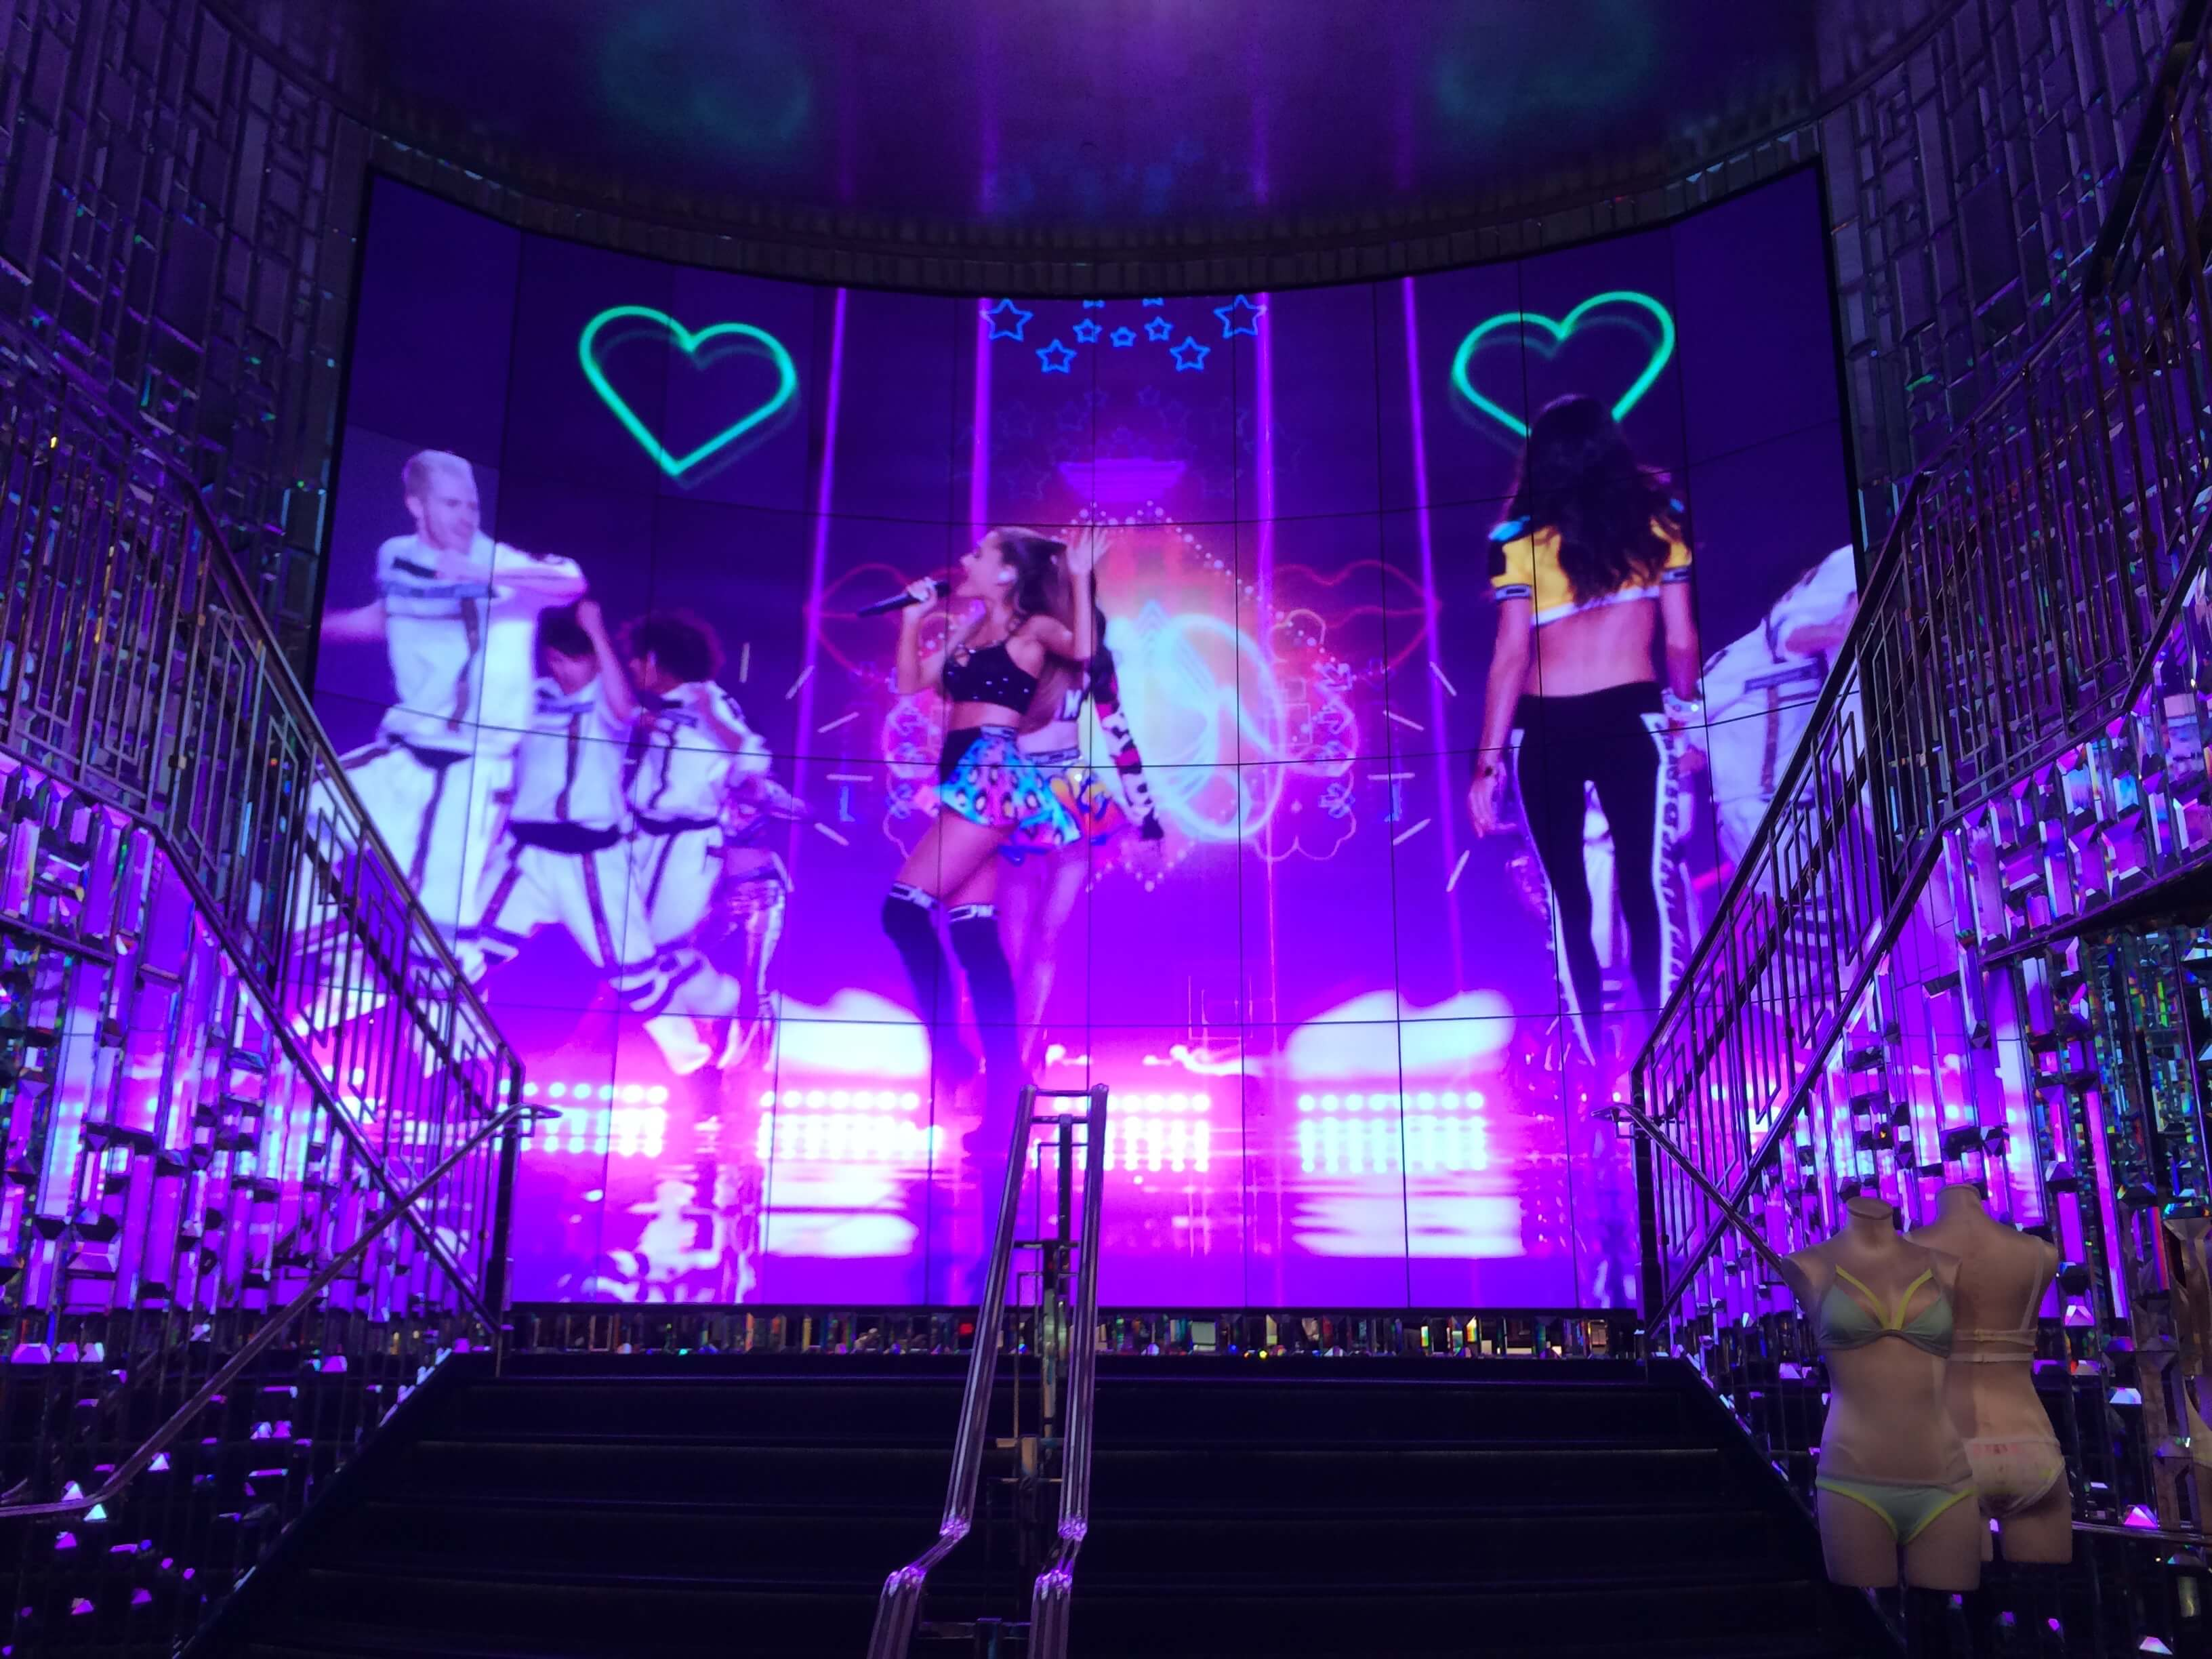 Victoria's secret - video wall